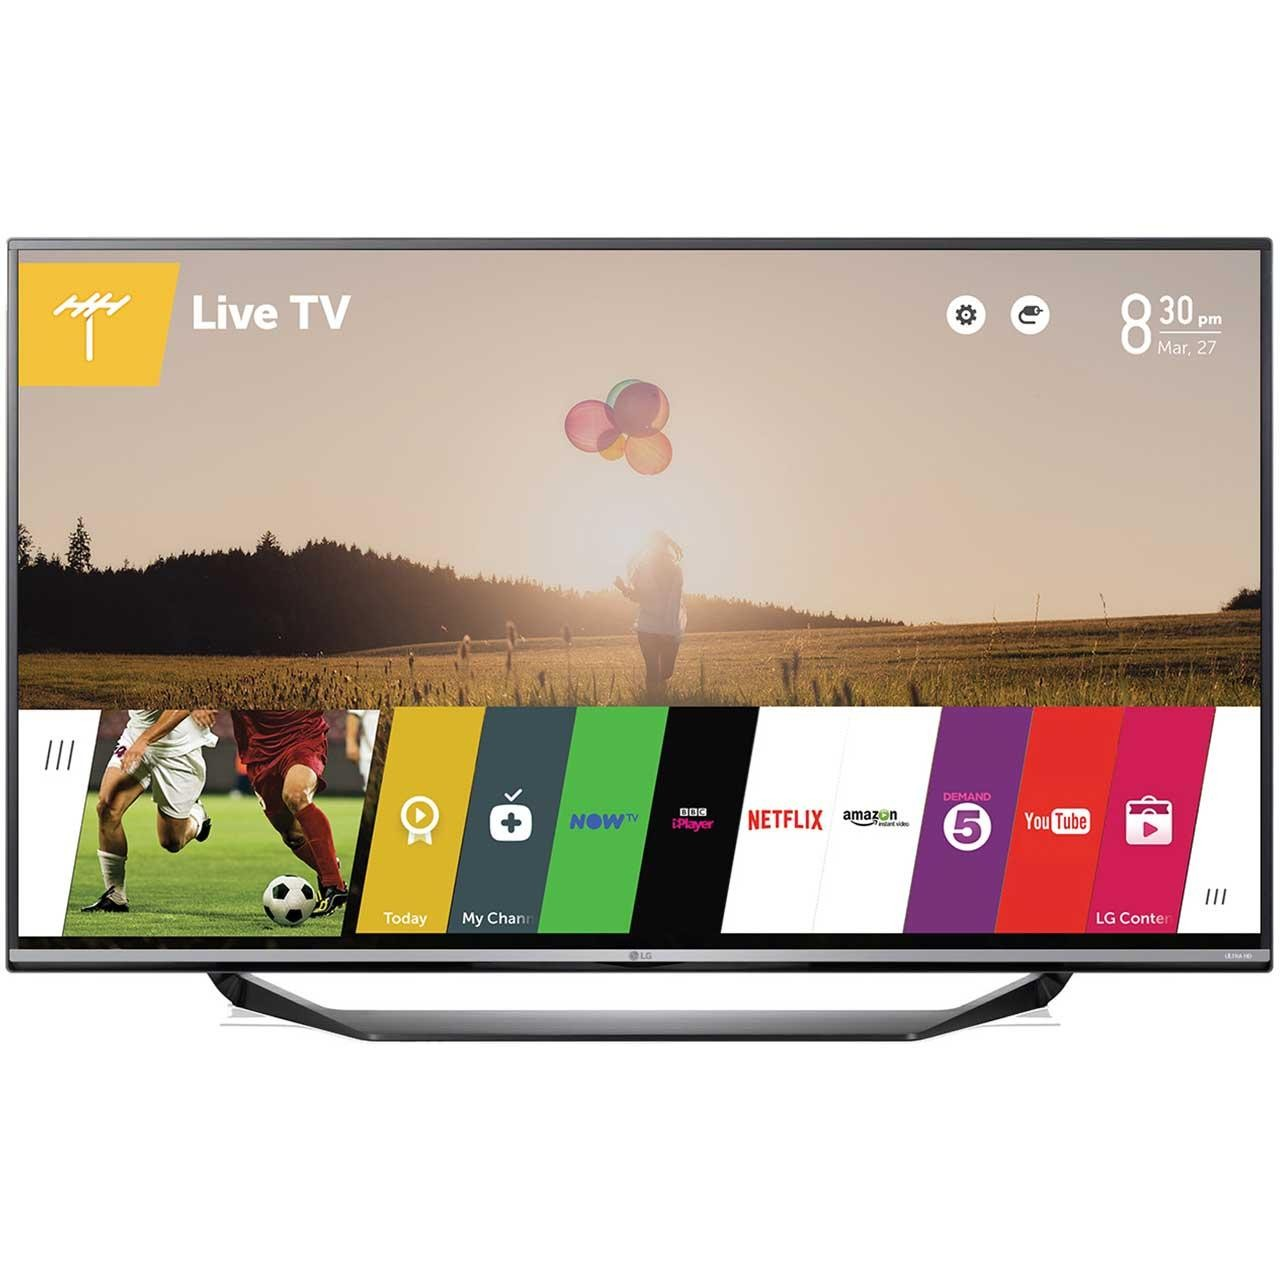 LG%2043UF770V%204k%20Ultra%20HD%20Smart%2043%20inch%20LED%20TV.jpg